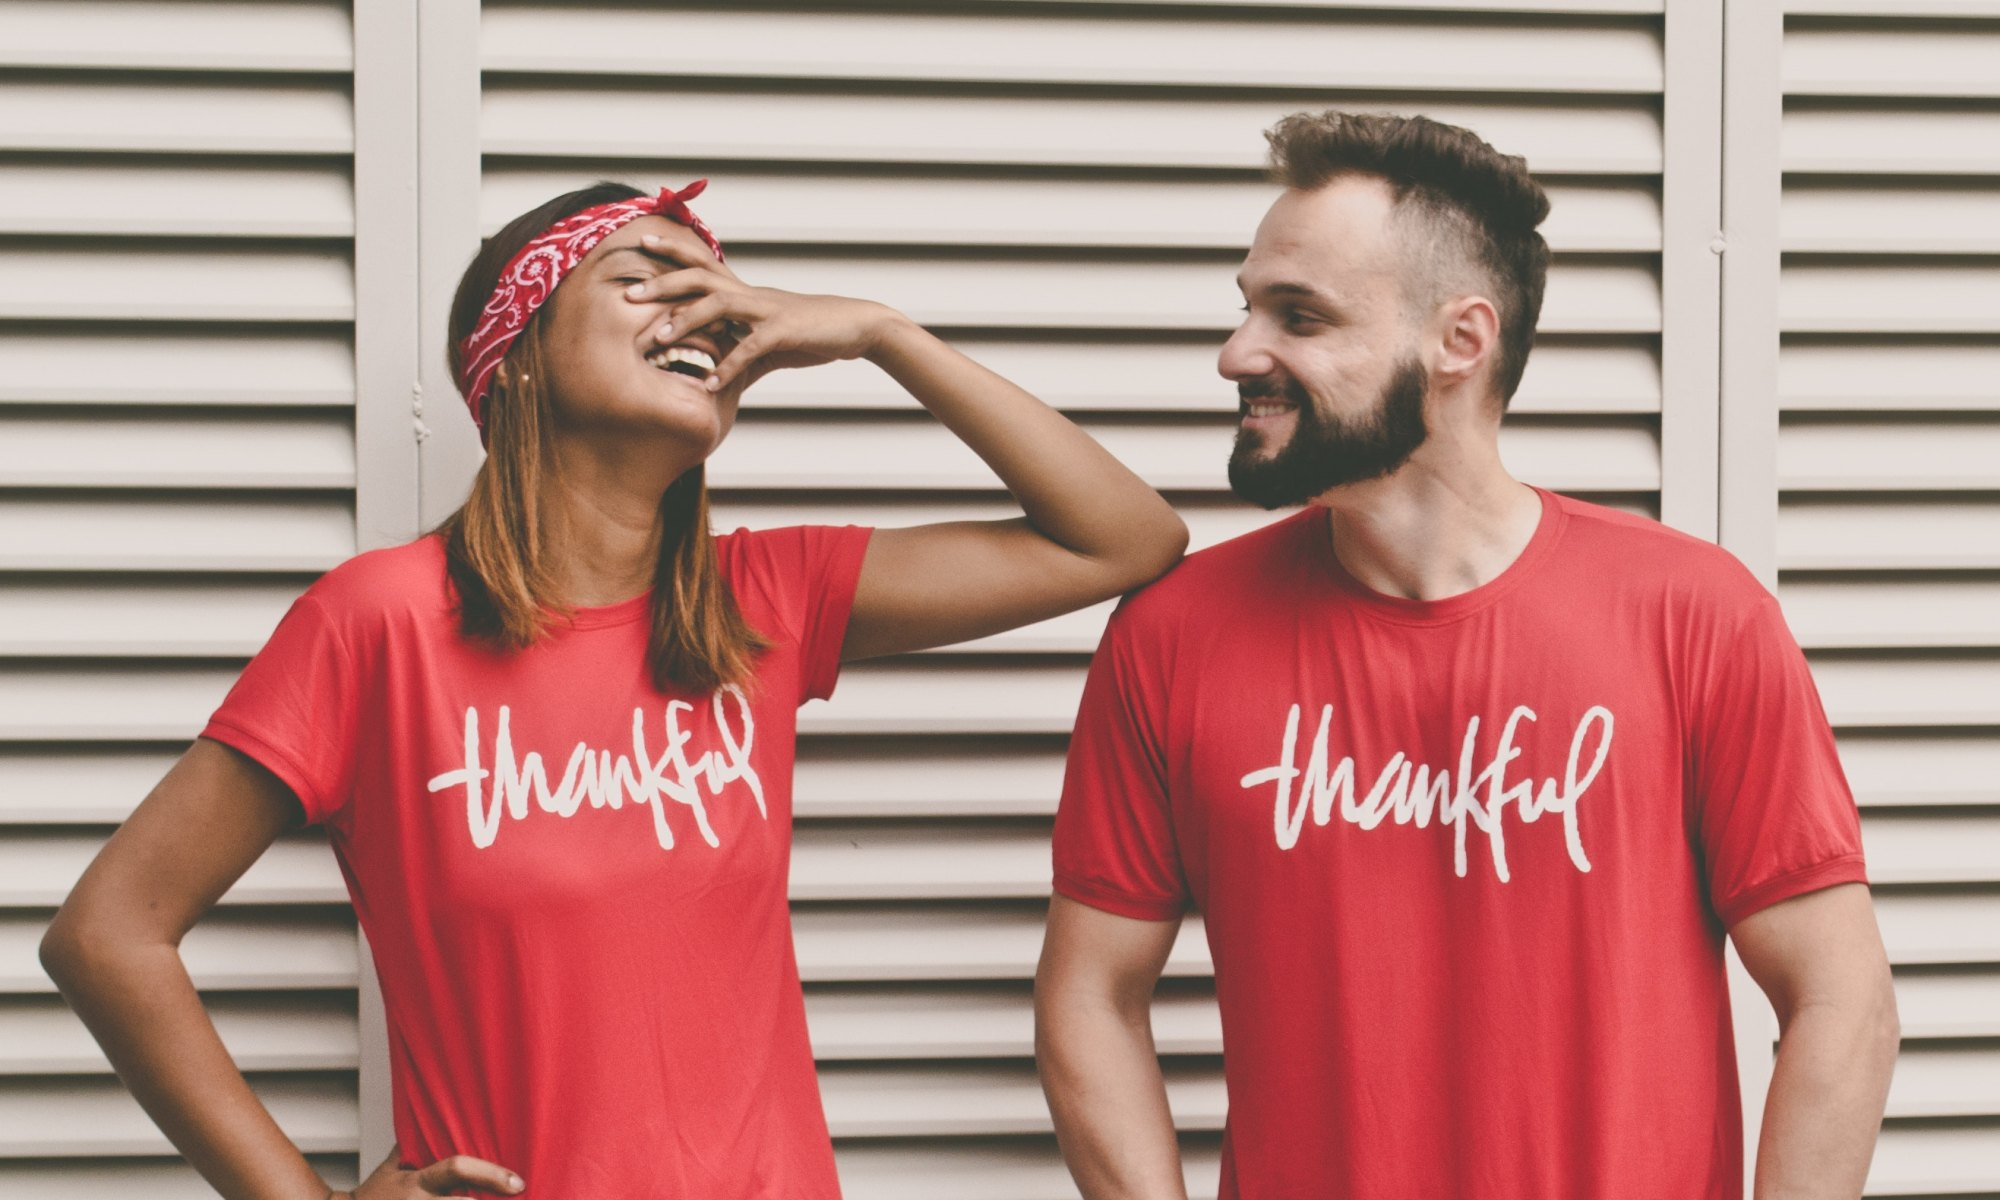 Man and woman smiling and being thankful while standing in front of louver door